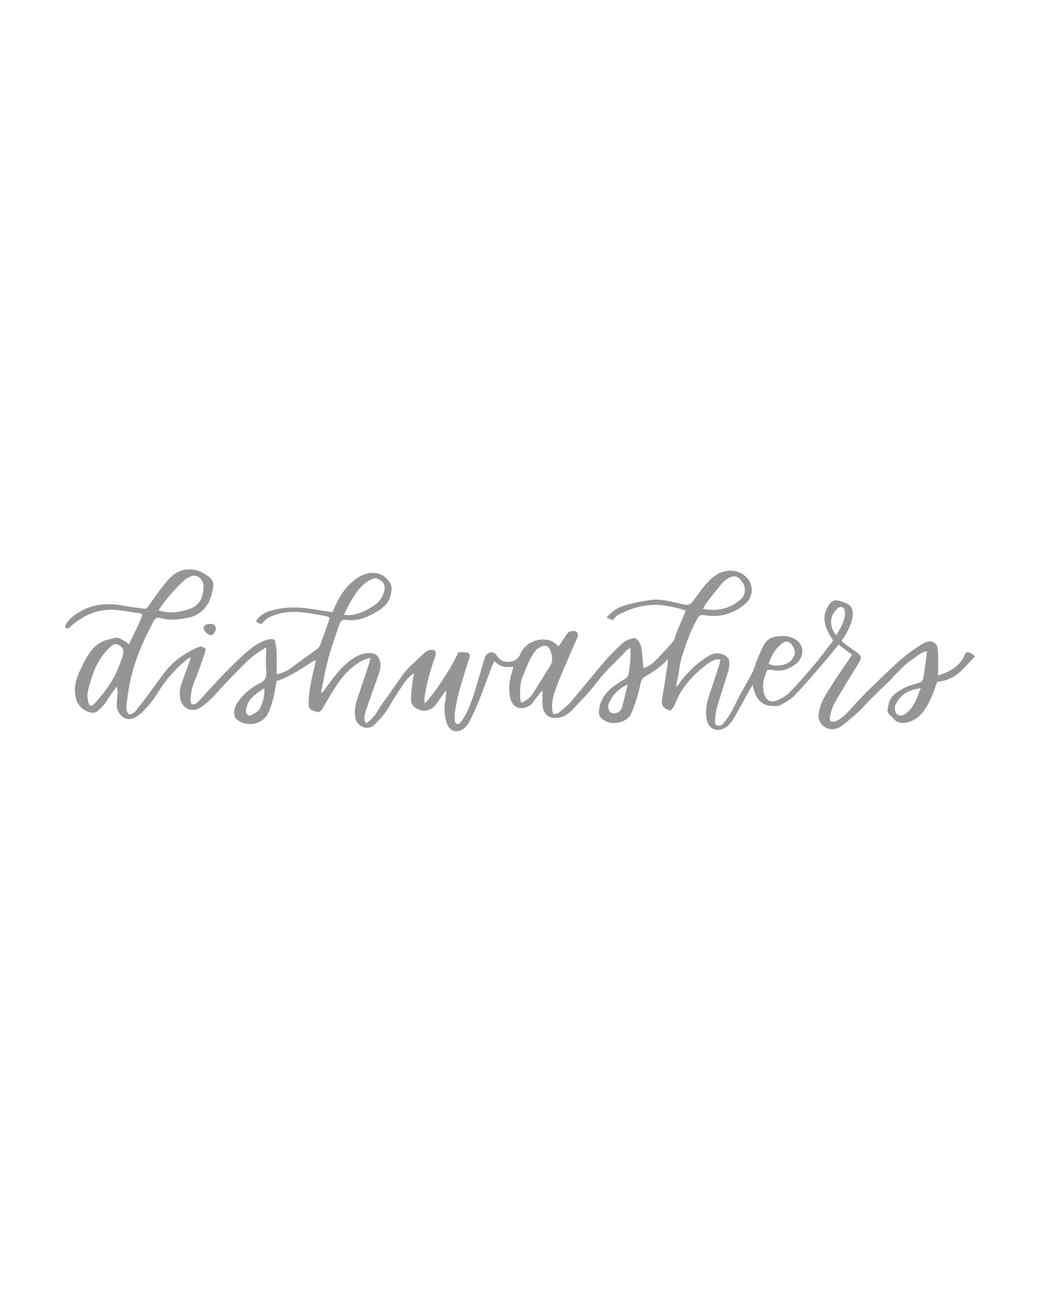 """dishwashers"" calligraphy"